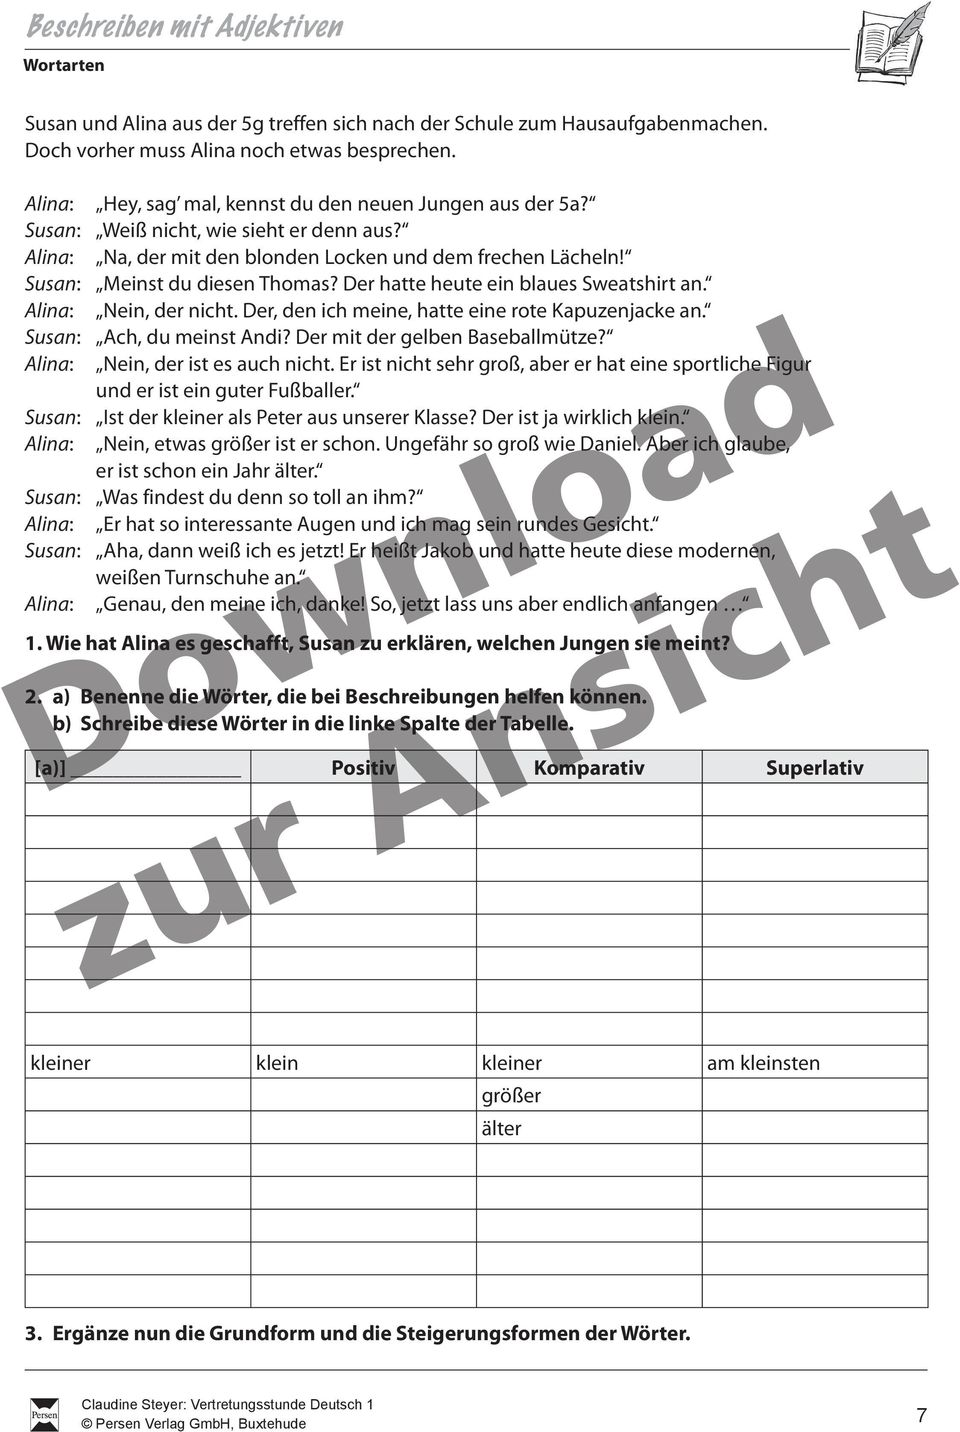 DOWNLOAD. Vertretungsstunde Deutsch 1. 5./6. Klasse: Wortarten ...